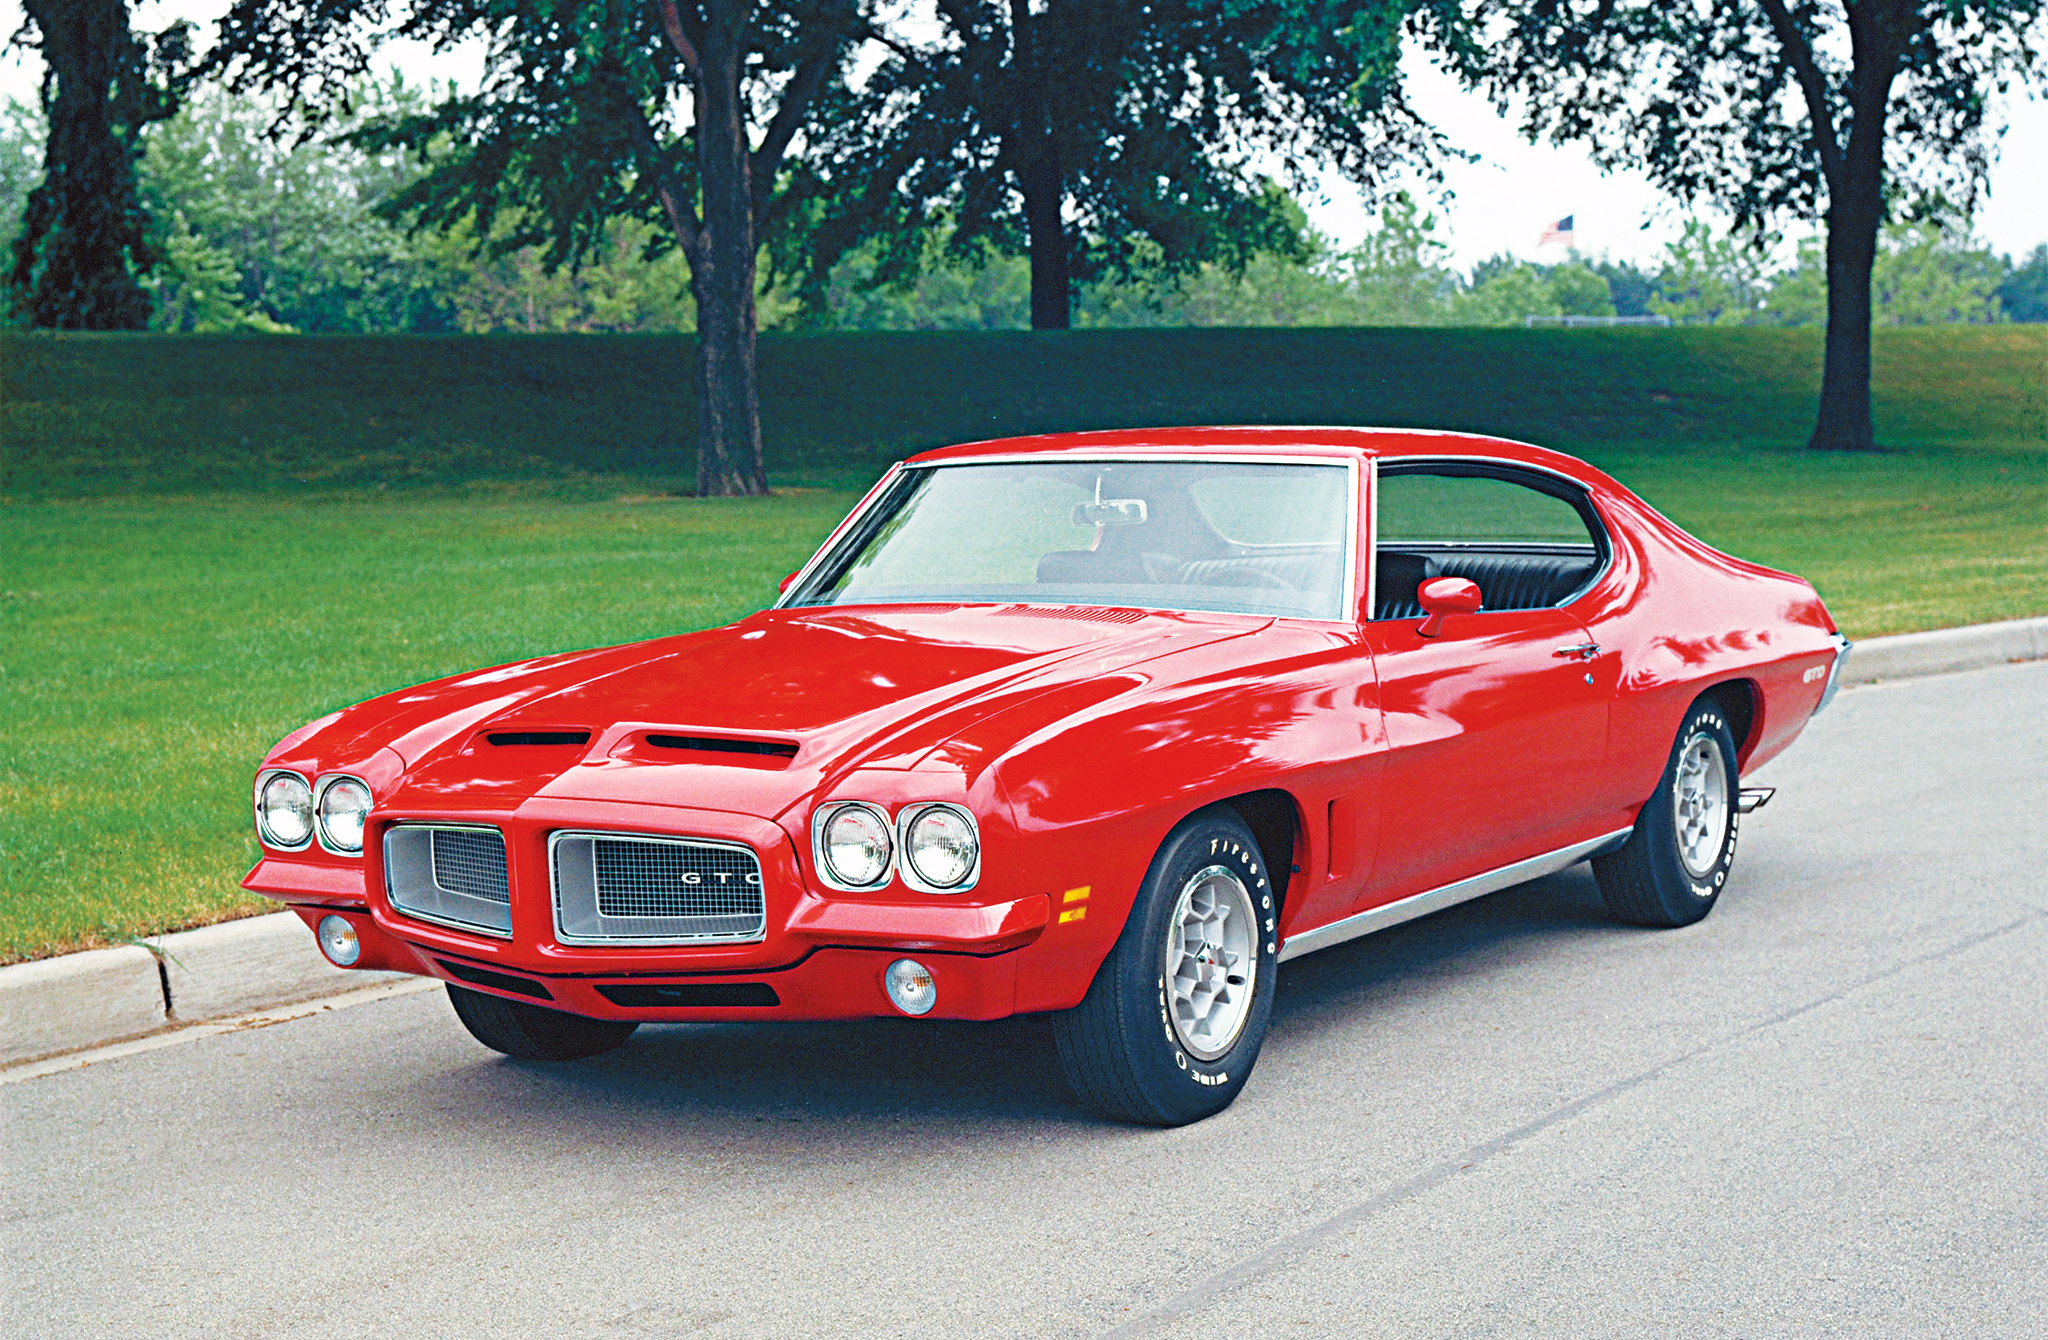 The 1972 GTO was a carry-over design from the previous year and a stopgap for the delayed next-generation A-bodies. The easiest way to tell a 1972 GTO from a 1971 is the presence of front fender-mounted air extractors and the chrome splitter exhaust tips that exit just behind the rear wheels.